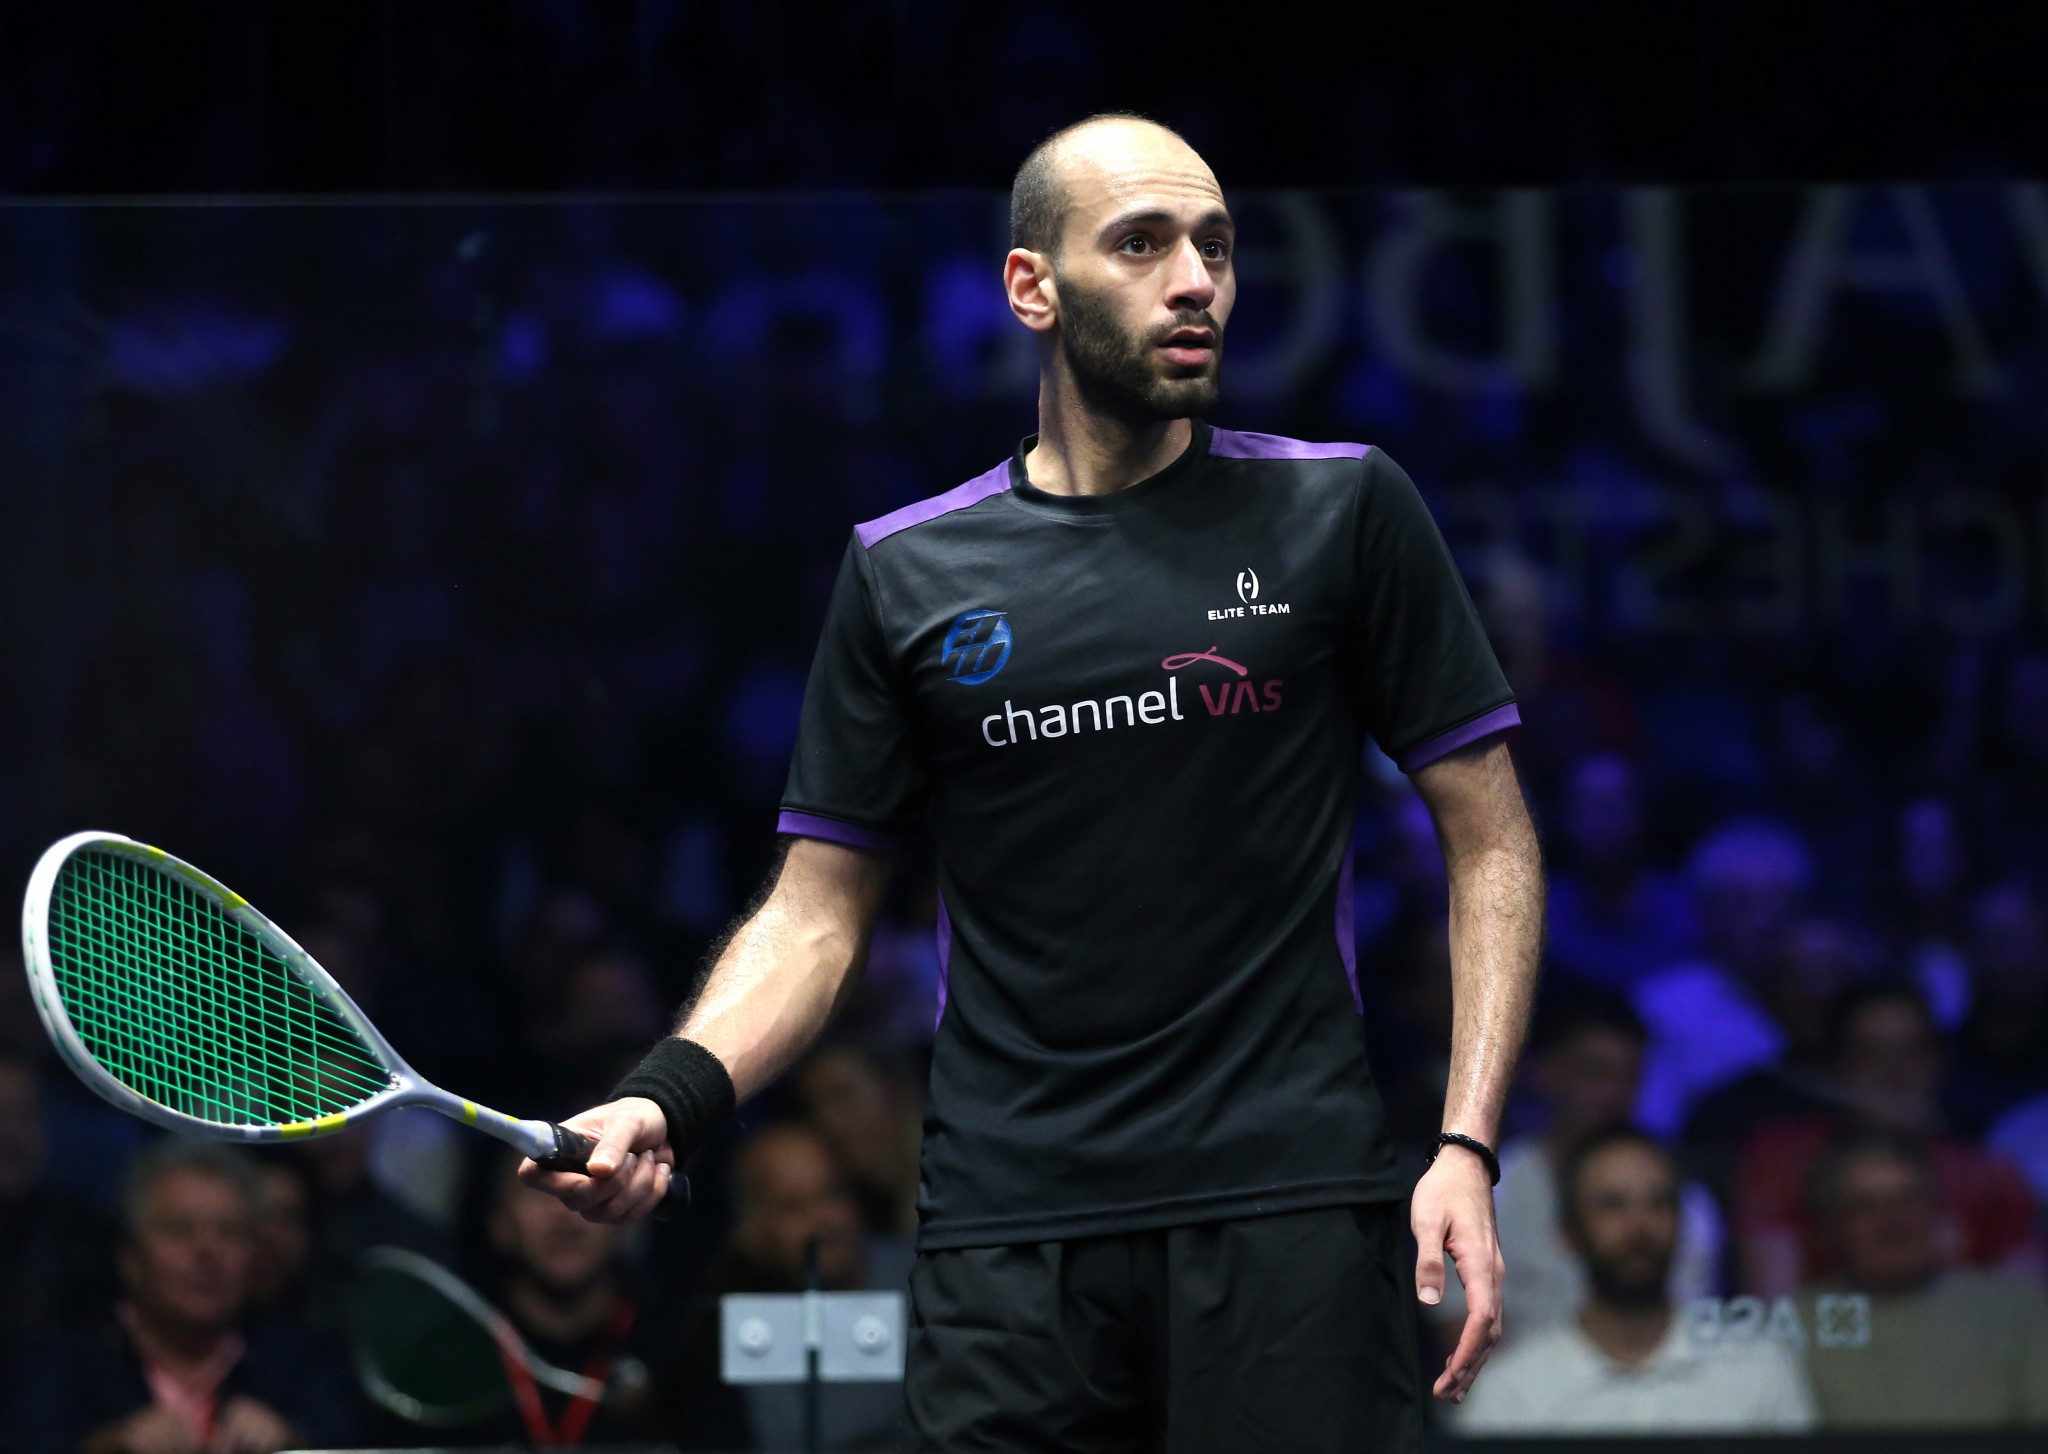 PSA World Tour returns to England with Manchester Open